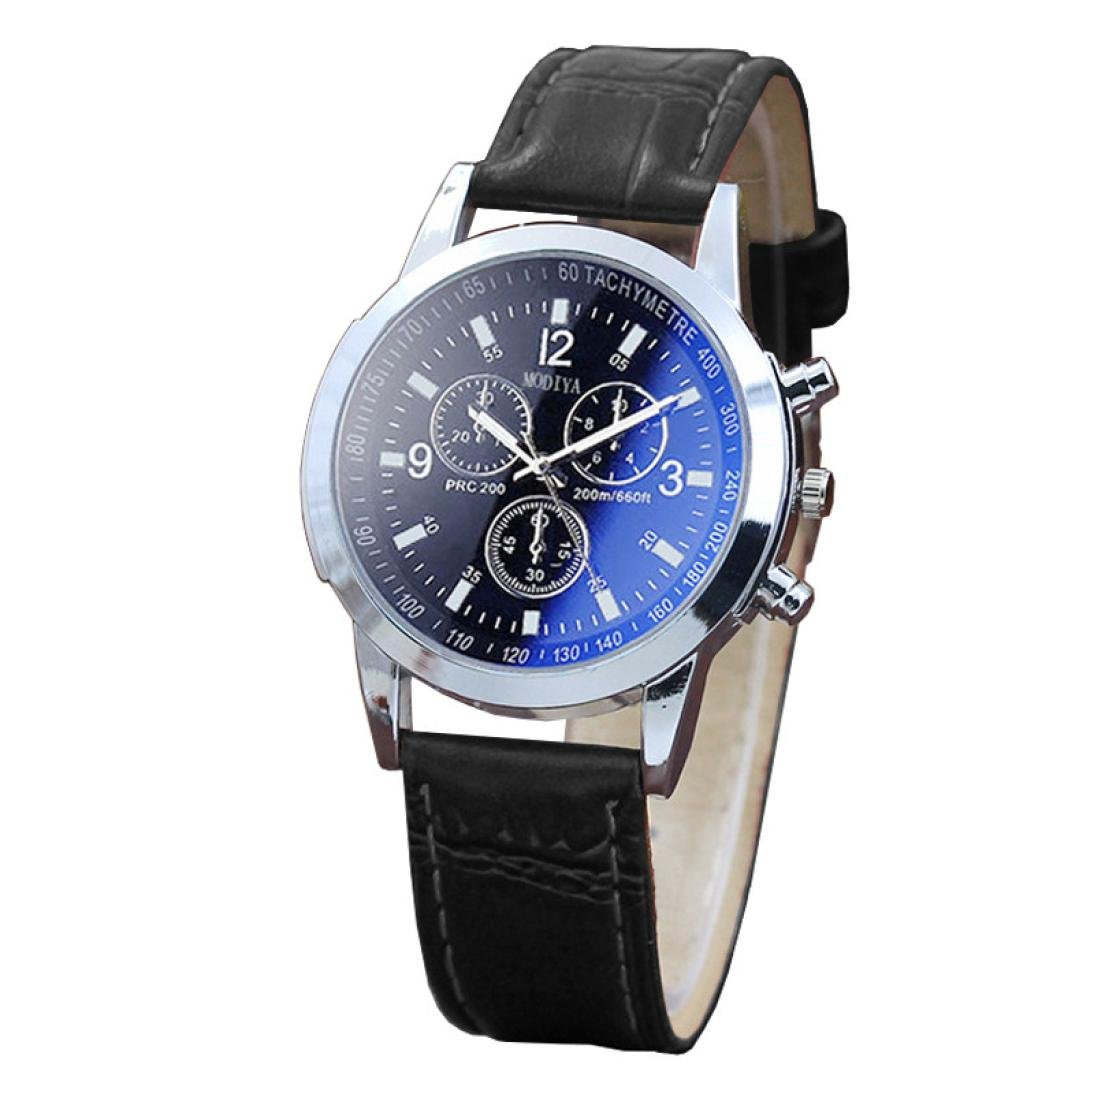 MOKO-PP Belt Sport Quartz Hour Wrist Analog Watch (C, Free Size) by MOKO-PP (Image #1)